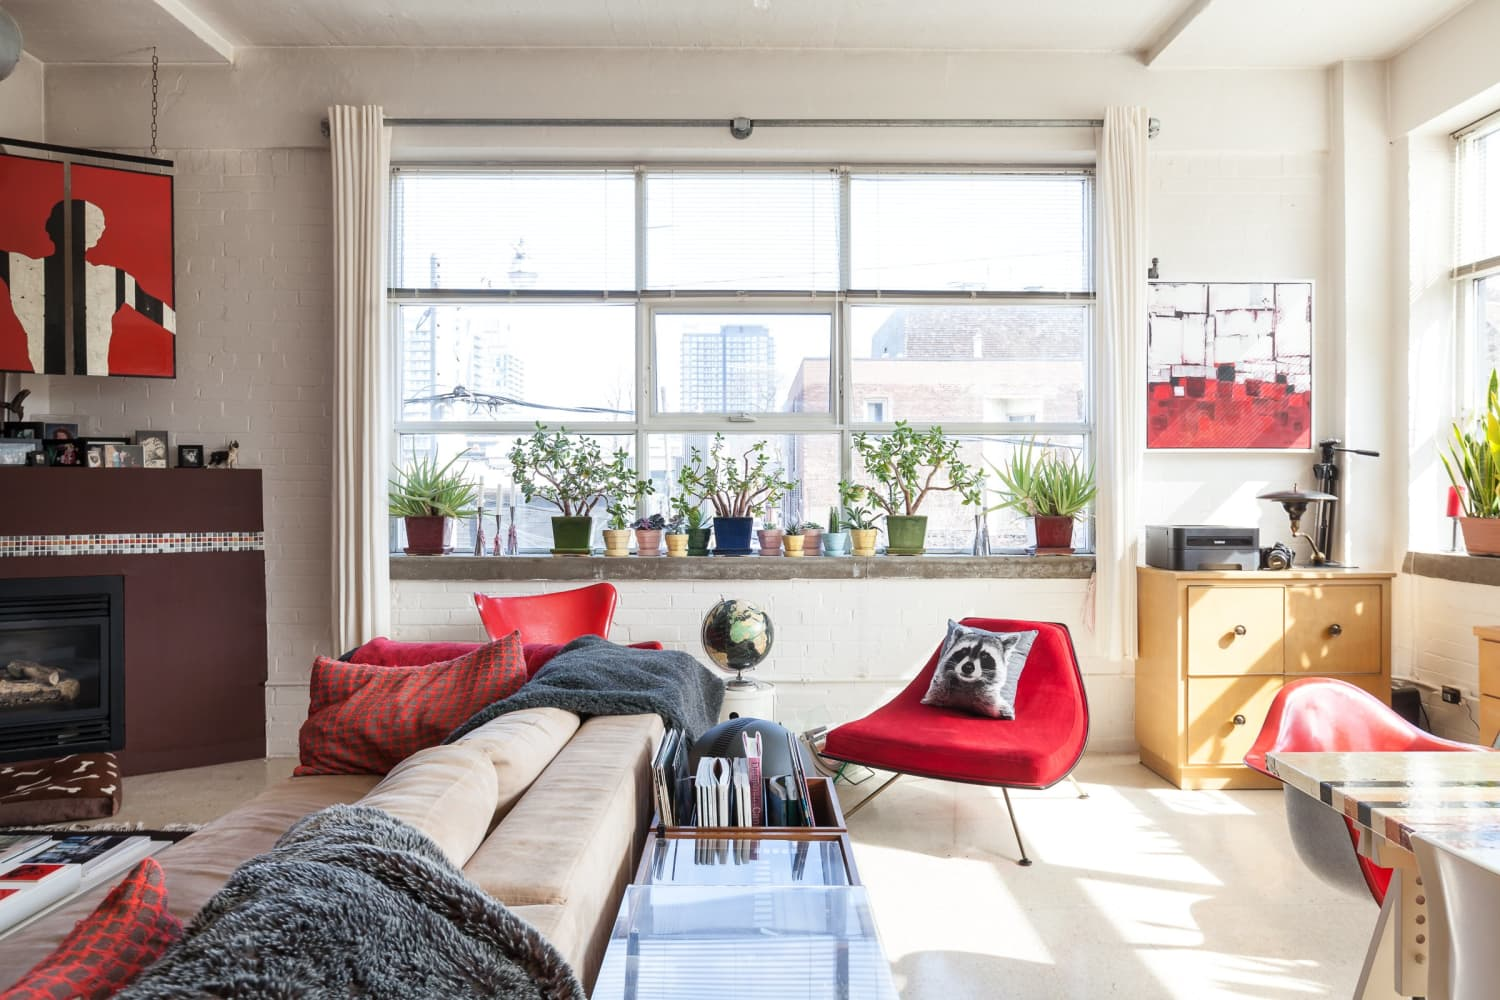 9 Truths About Making a Home That Are Worth Remembering